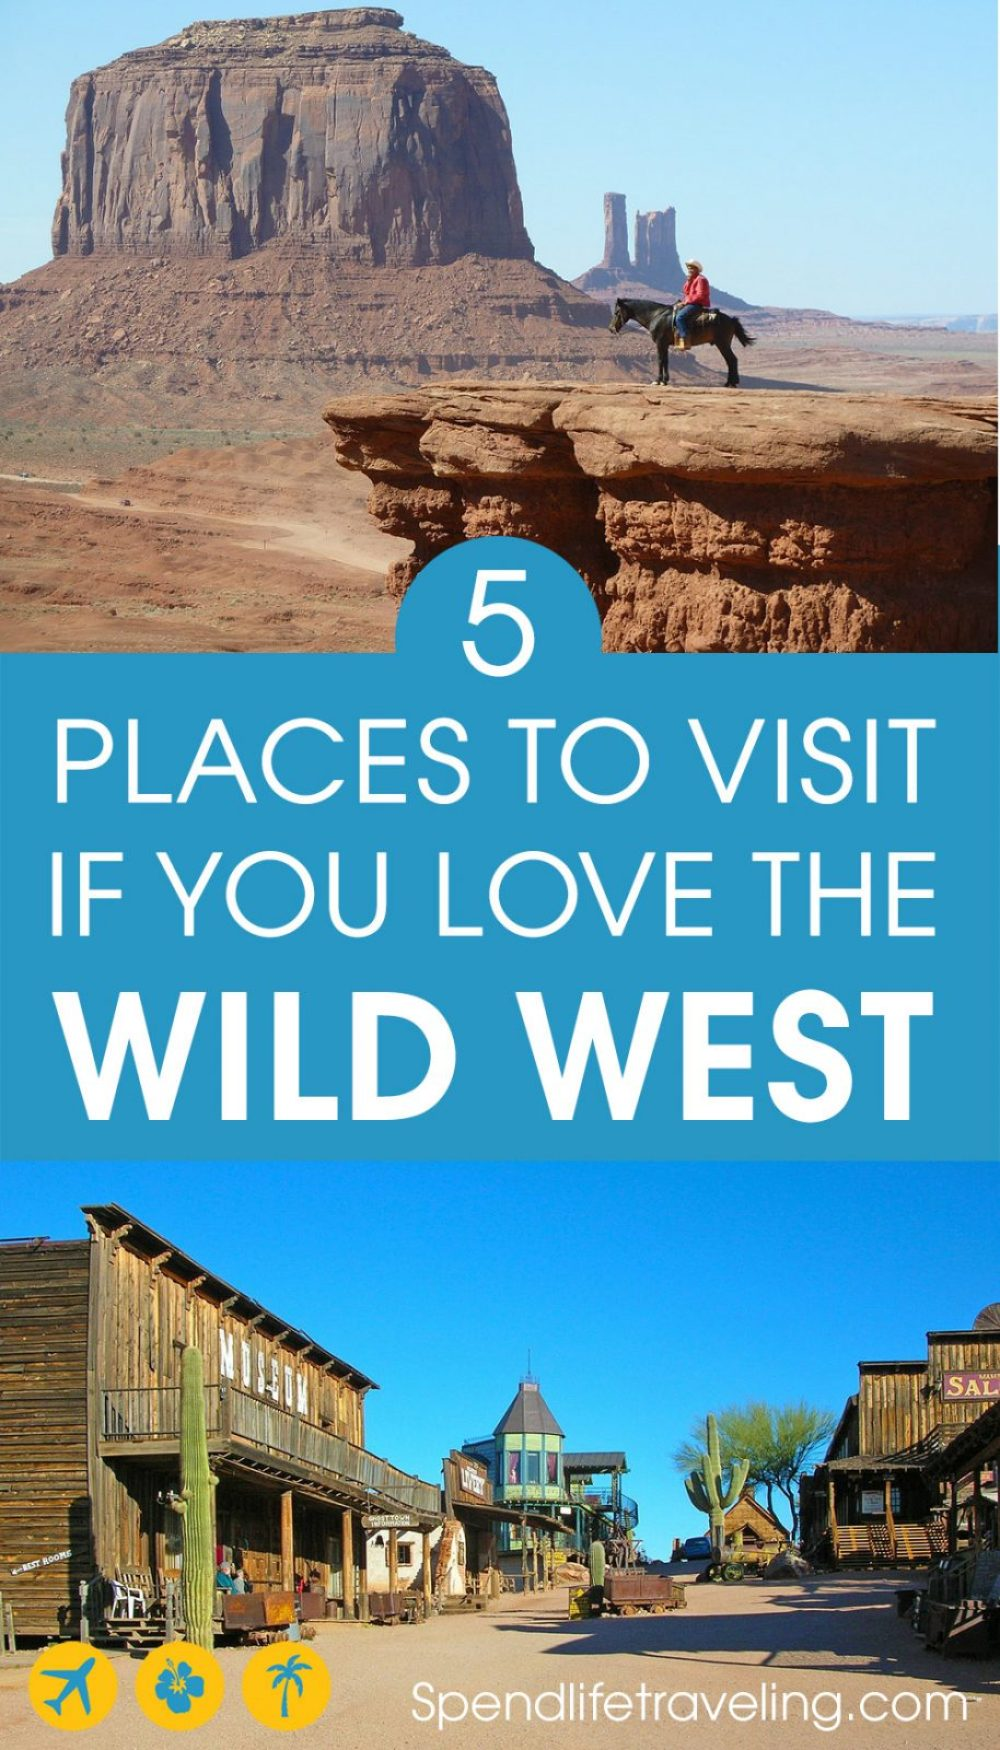 5 Places You Should Visit in The #USA if You Love The Wild West. #wildwest #travelUSA